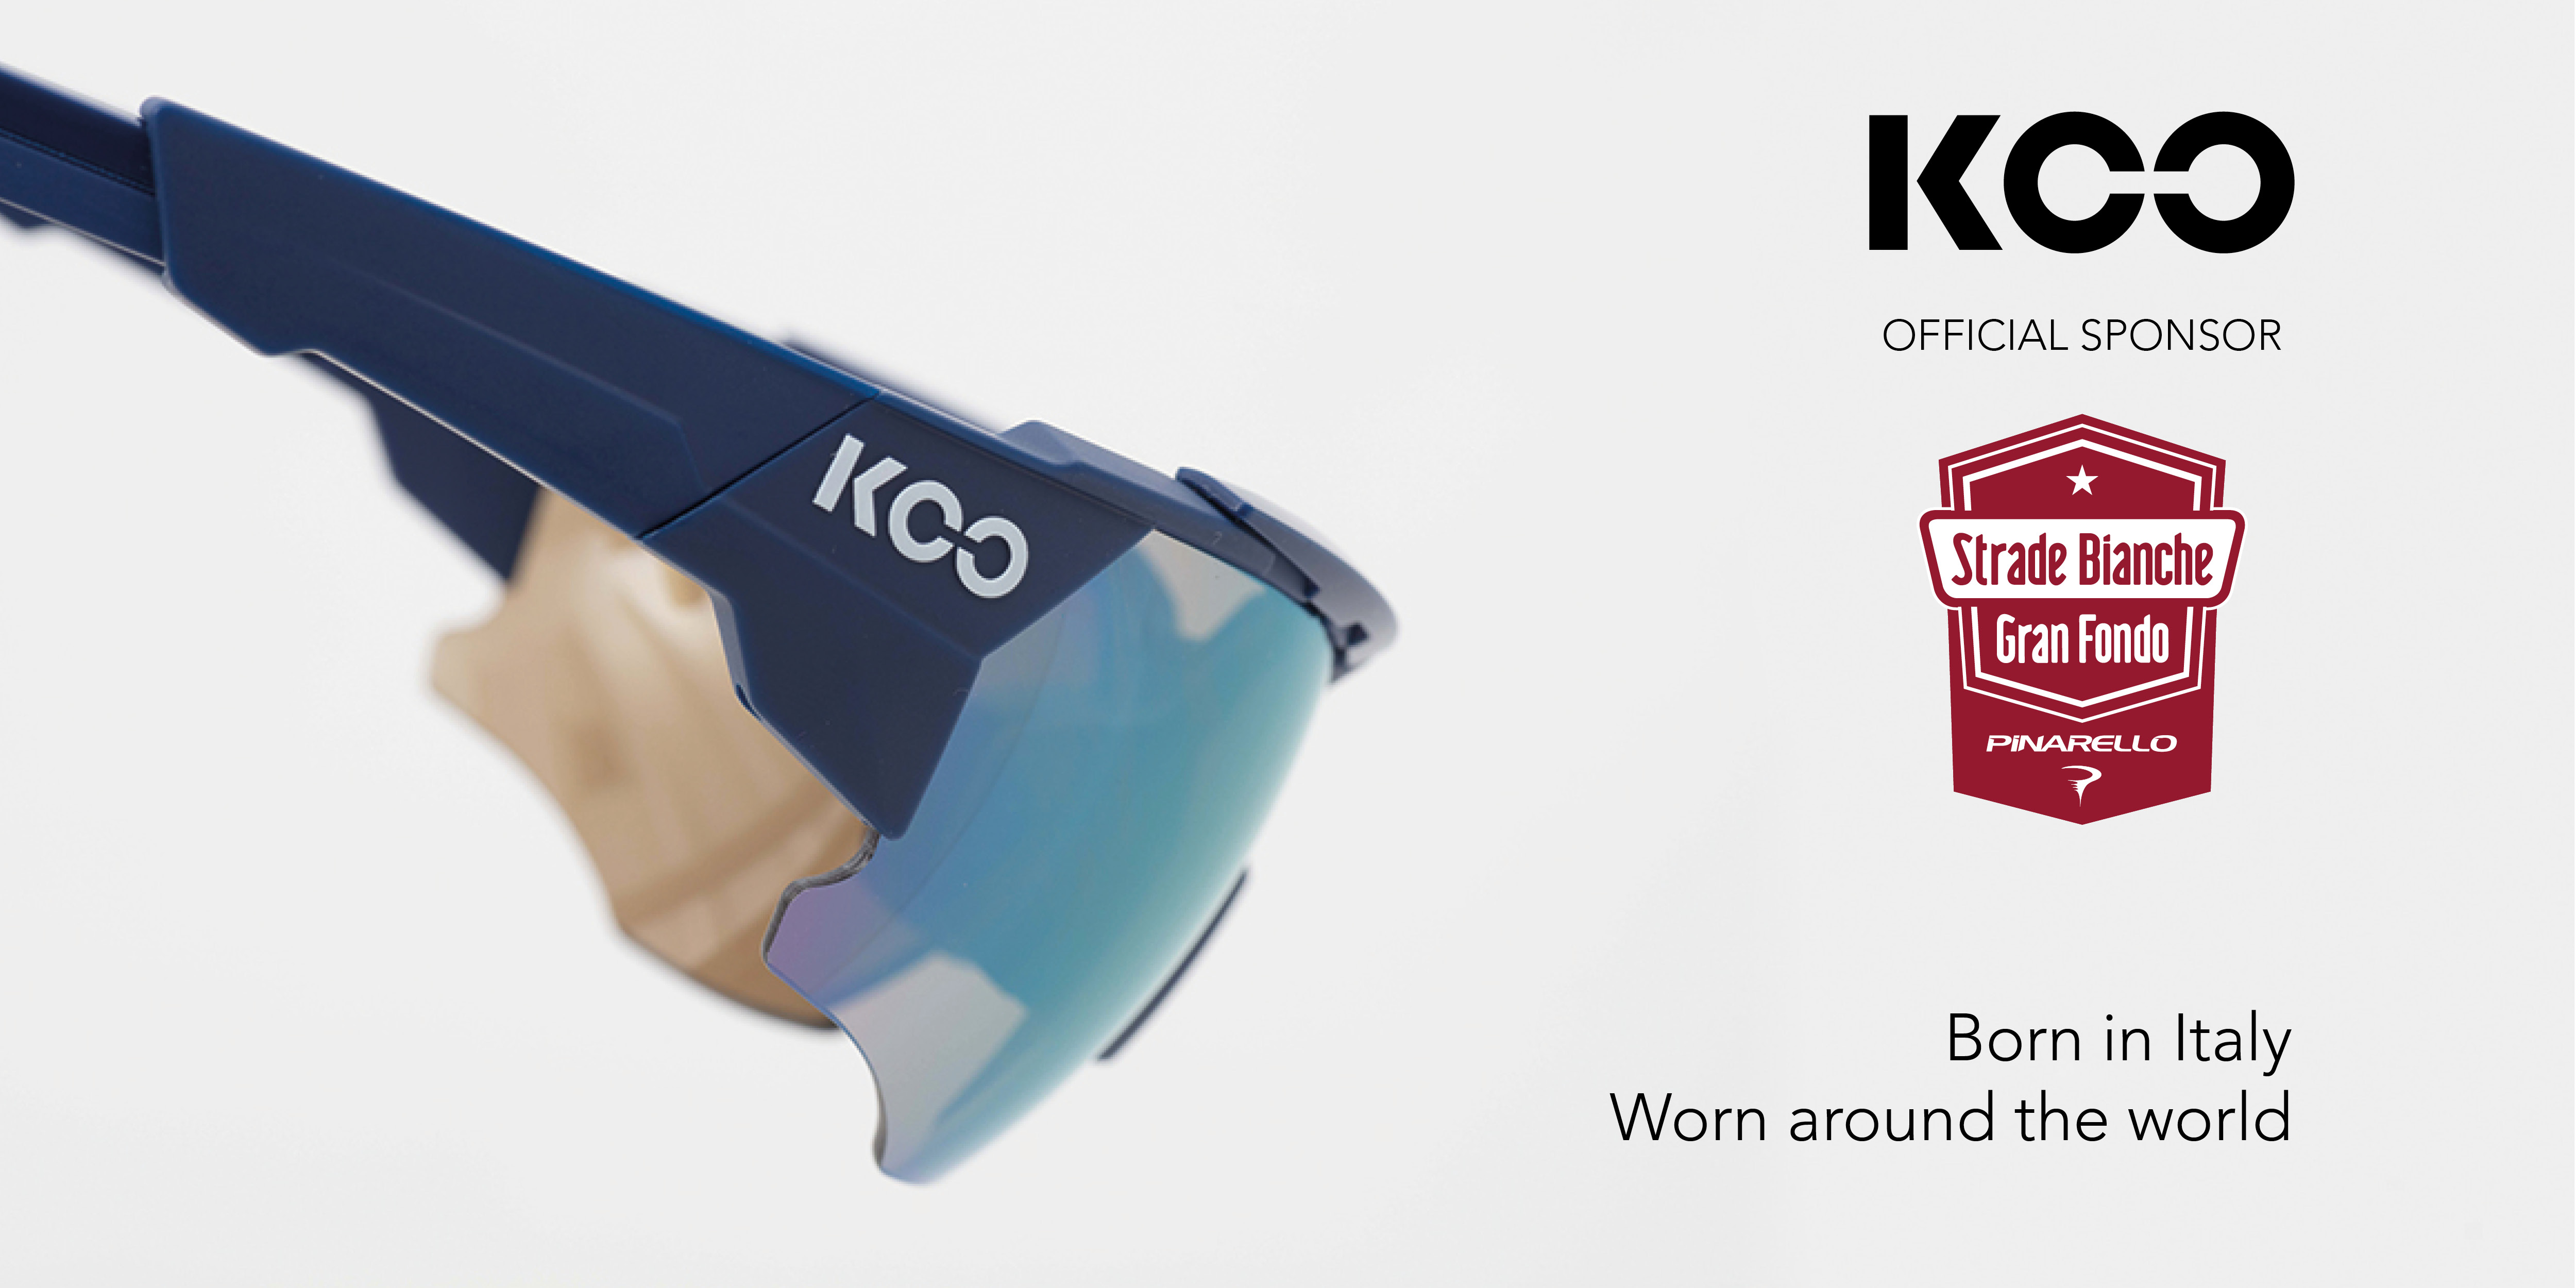 KOO – Official Partner of Strade Bianche and Its Gran Fondo